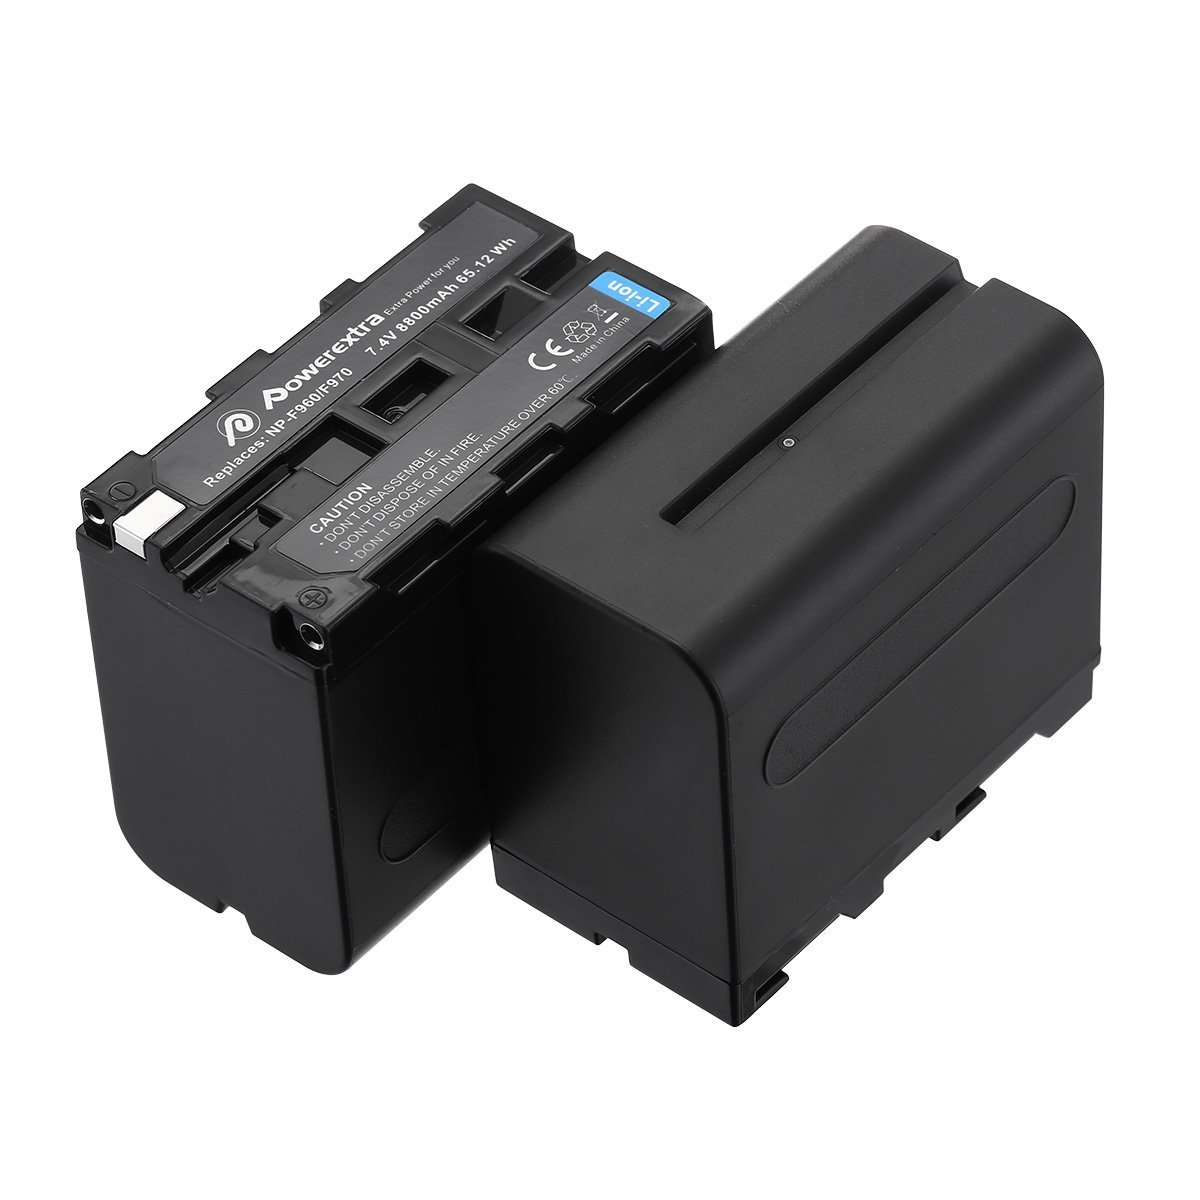 Powerextra 2 Pack Replacement Sony NP-F970 Battery 8800mAh for Sony DCR-VX2100, DSR-PD150, DSR-PD170, FDR-AX1, HDR-AX2000, HDR-FX1, HDR-FX7, HDR-FX1000, HVL-LBPB, HVR-HD1000U, HVR-V1U, HVR-Z1P by Powerextra